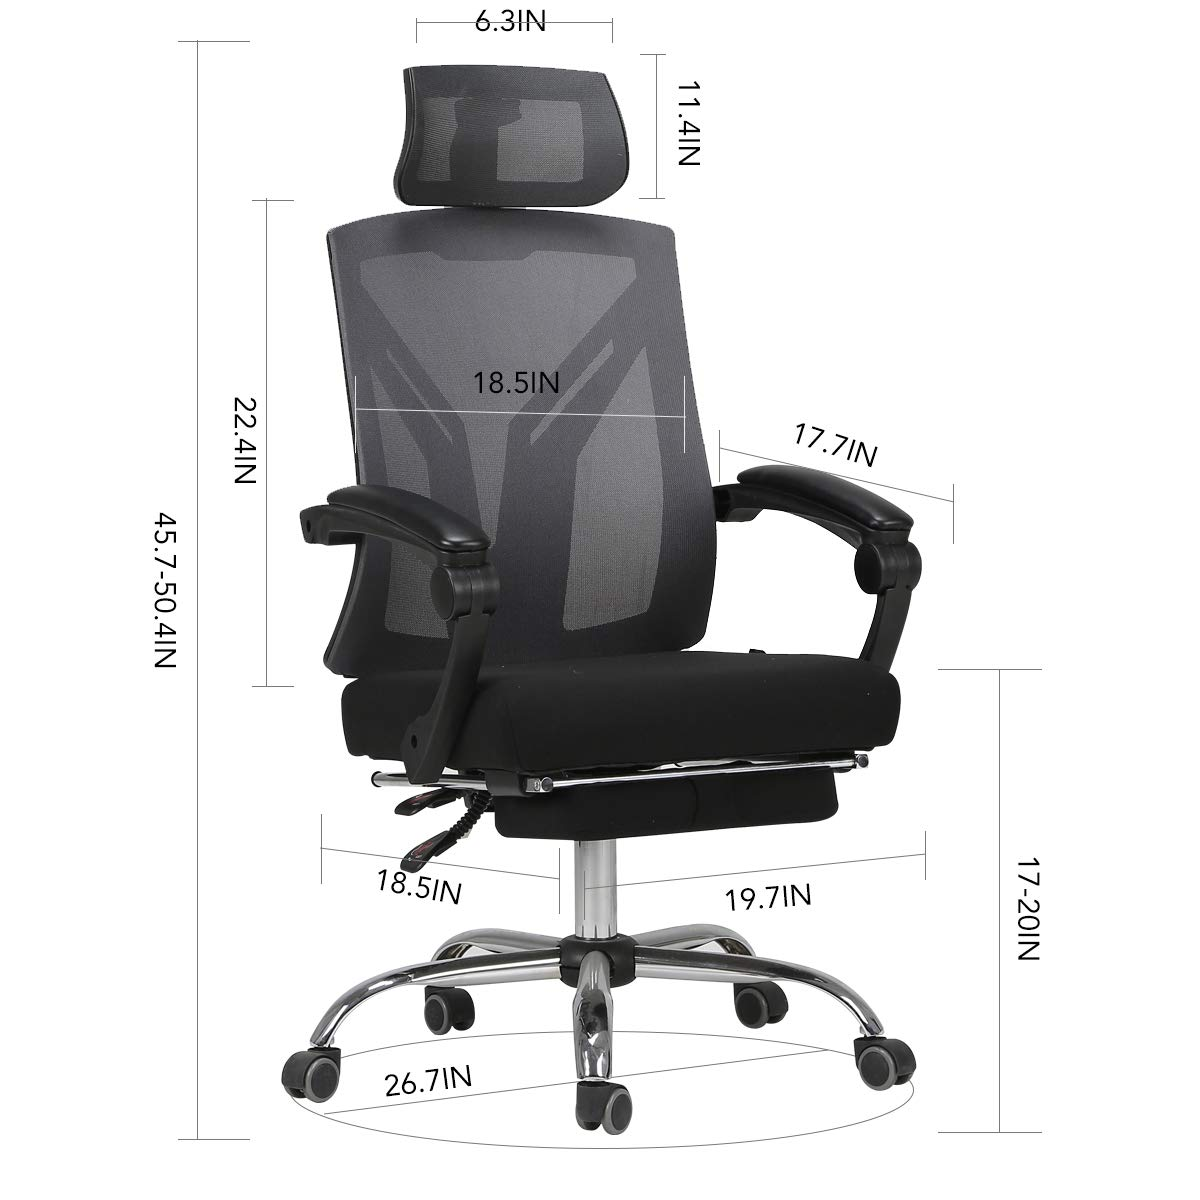 Hbada Ergonomic Office Recliner Chair - High-Back Desk Chair Racing Style with Lumbar Support - Height Adjustable Seat, Headrest- Breathable Mesh Back - Soft Foam Seat Cushion with Footrest, Black by Hbada (Image #7)